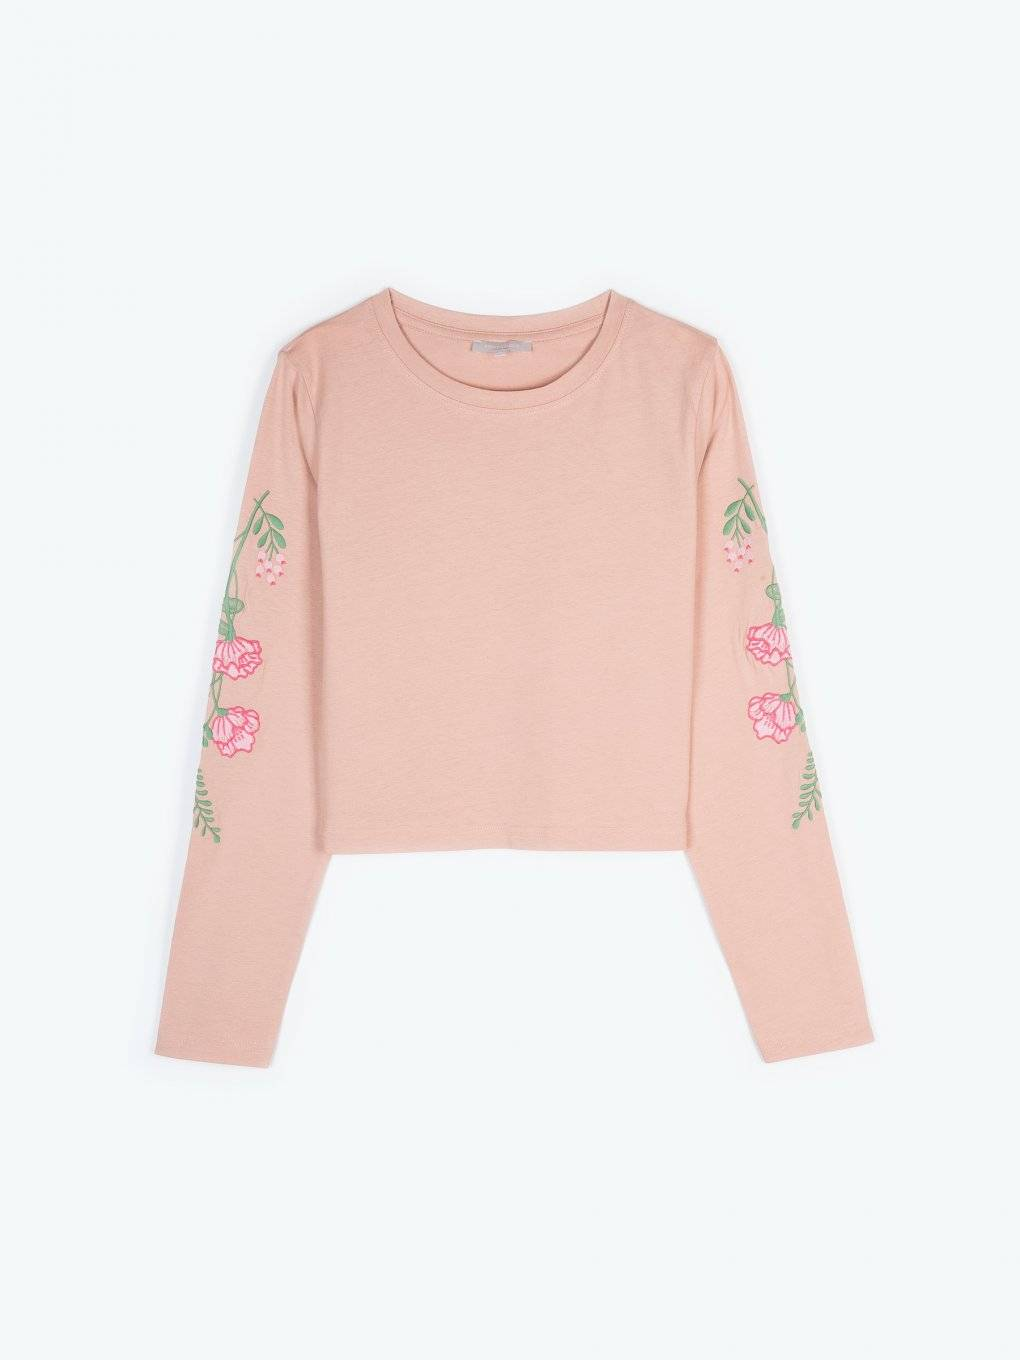 T-shirt with floral emroidery